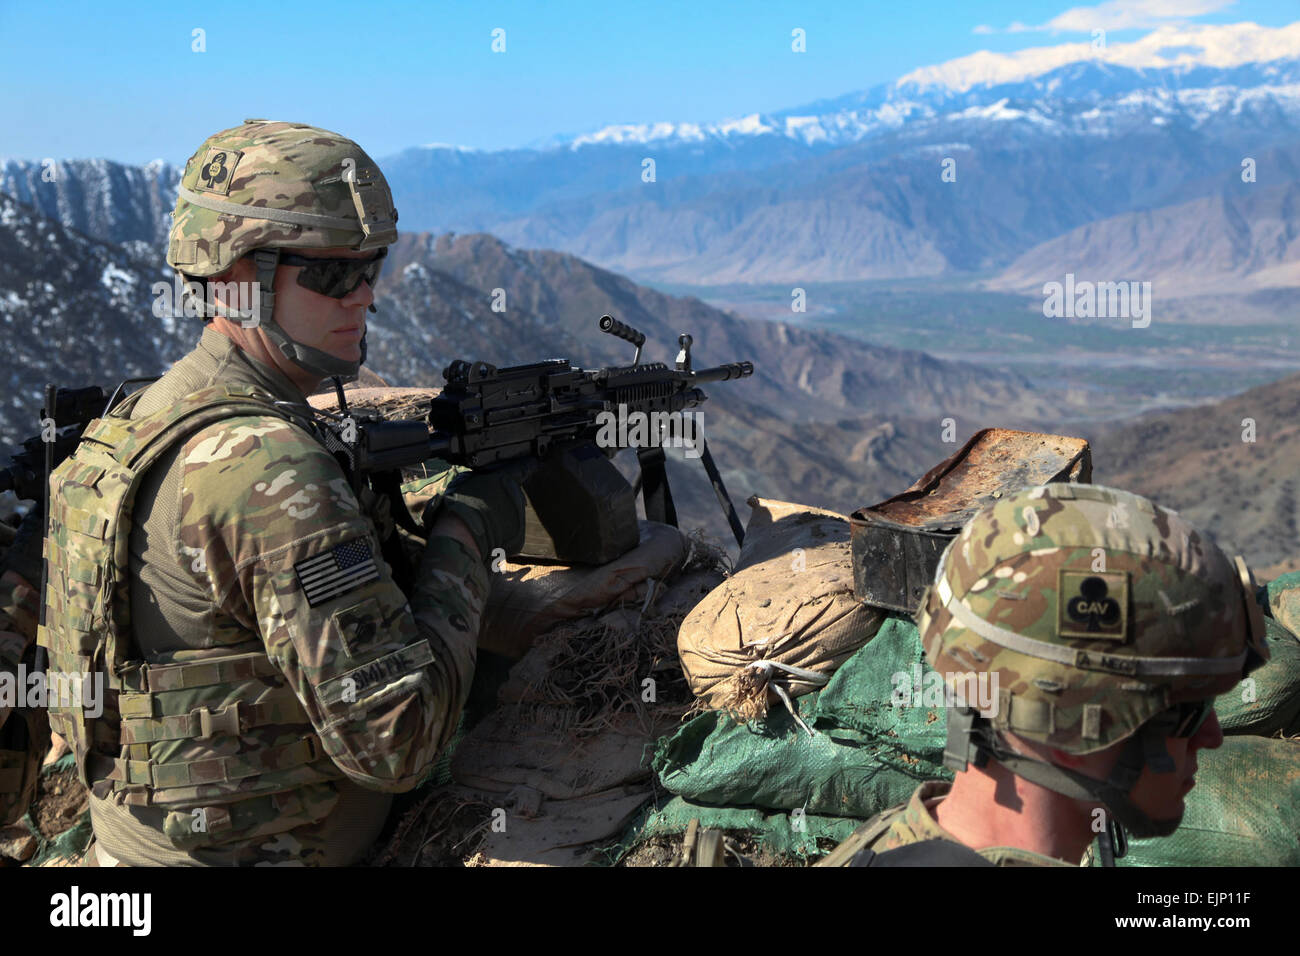 U.S. Army Sgt. Curtis Smith, 2nd Battalion, 327th Infantry Regiment, 1st Brigade Combat Team, 101st Airborne Division - Stock Image